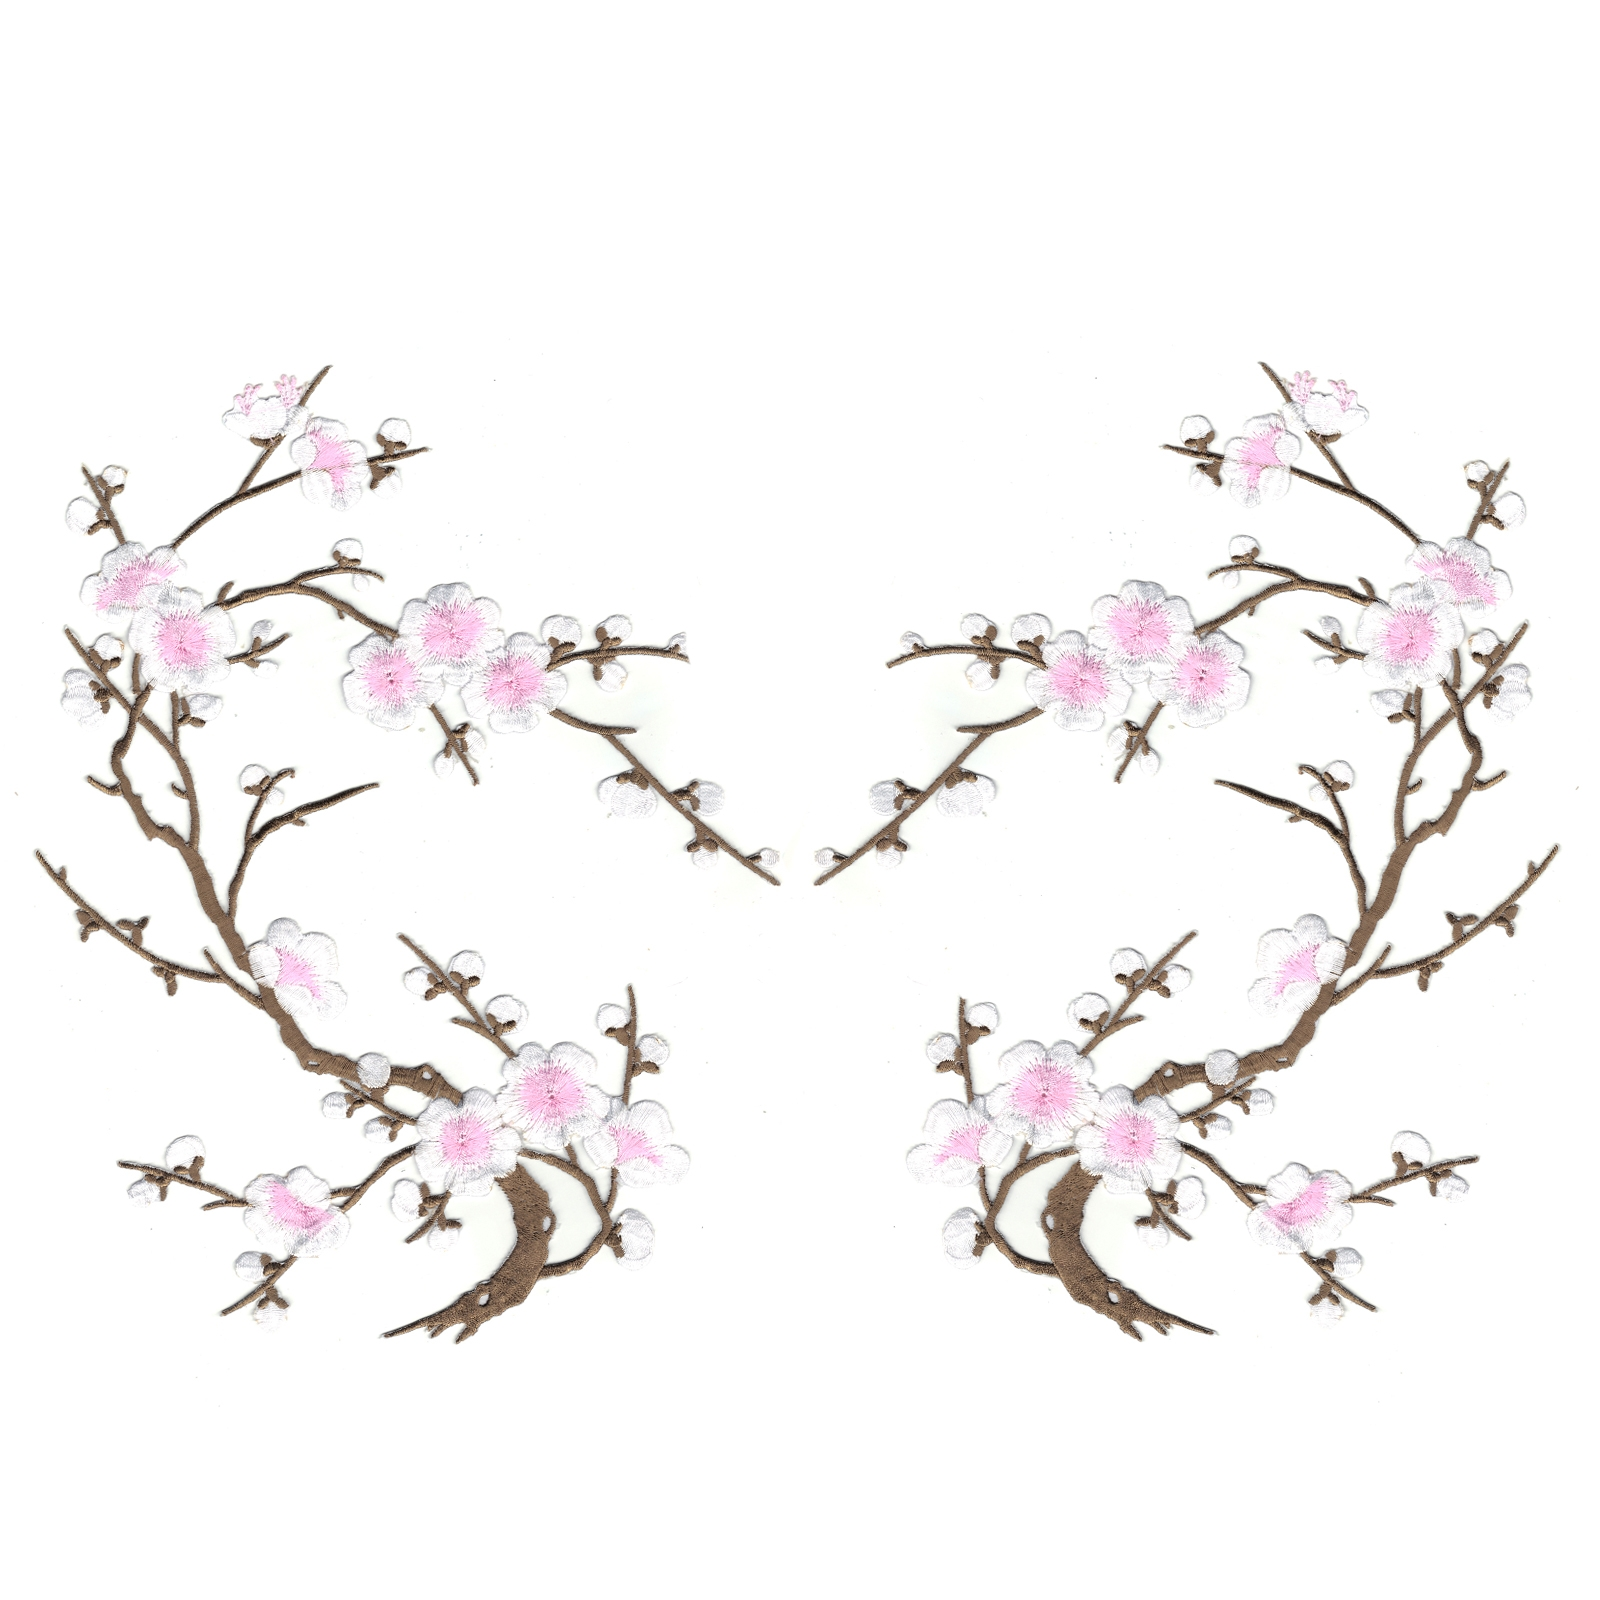 Pink and White Cherry Blossom Flowers Set of Two Embroidered Iron on Patches